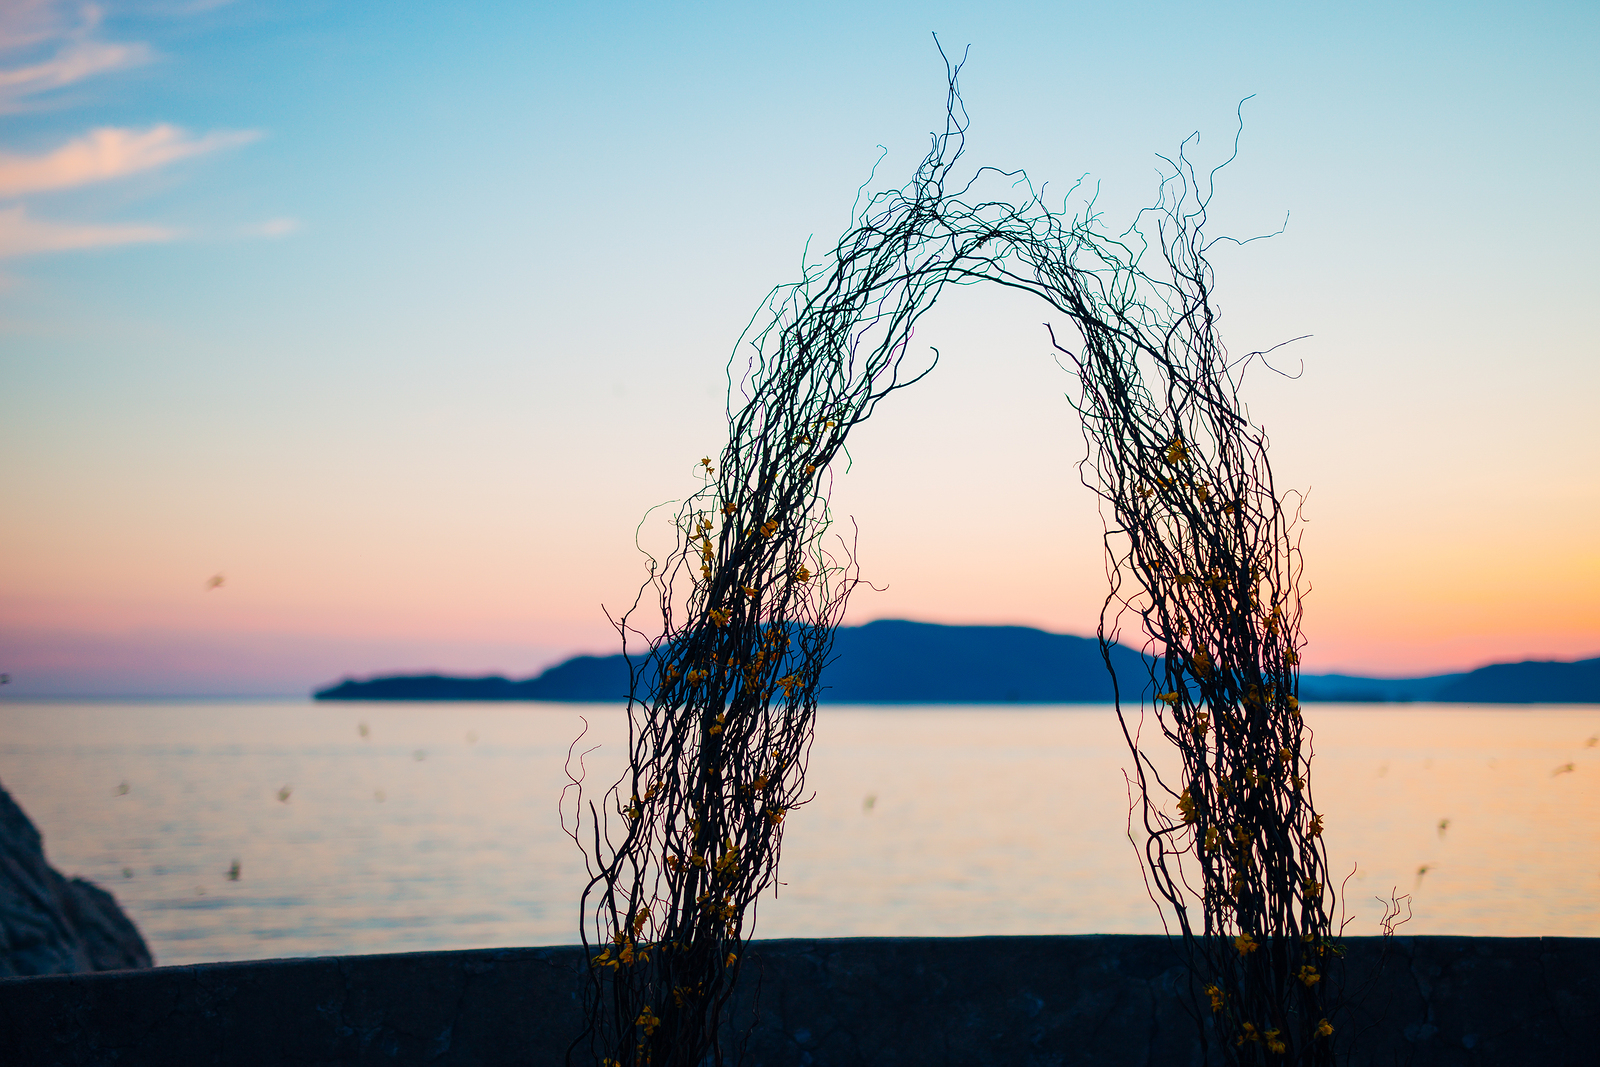 Who needs more than a few willow branches when you have a sunset ocean backdrop?